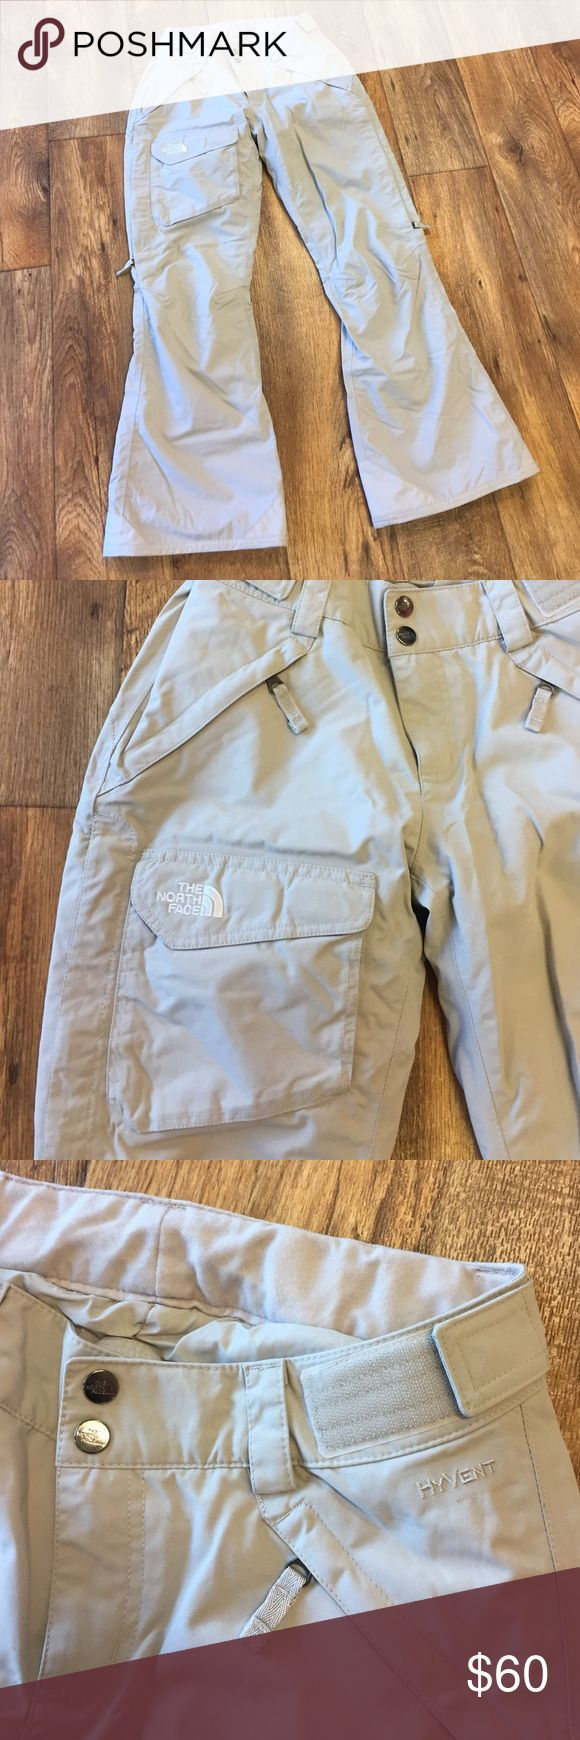 The North Face Tan Hyvent Ski Pants Excellent condition! Awesome deal!! The North Face Pants